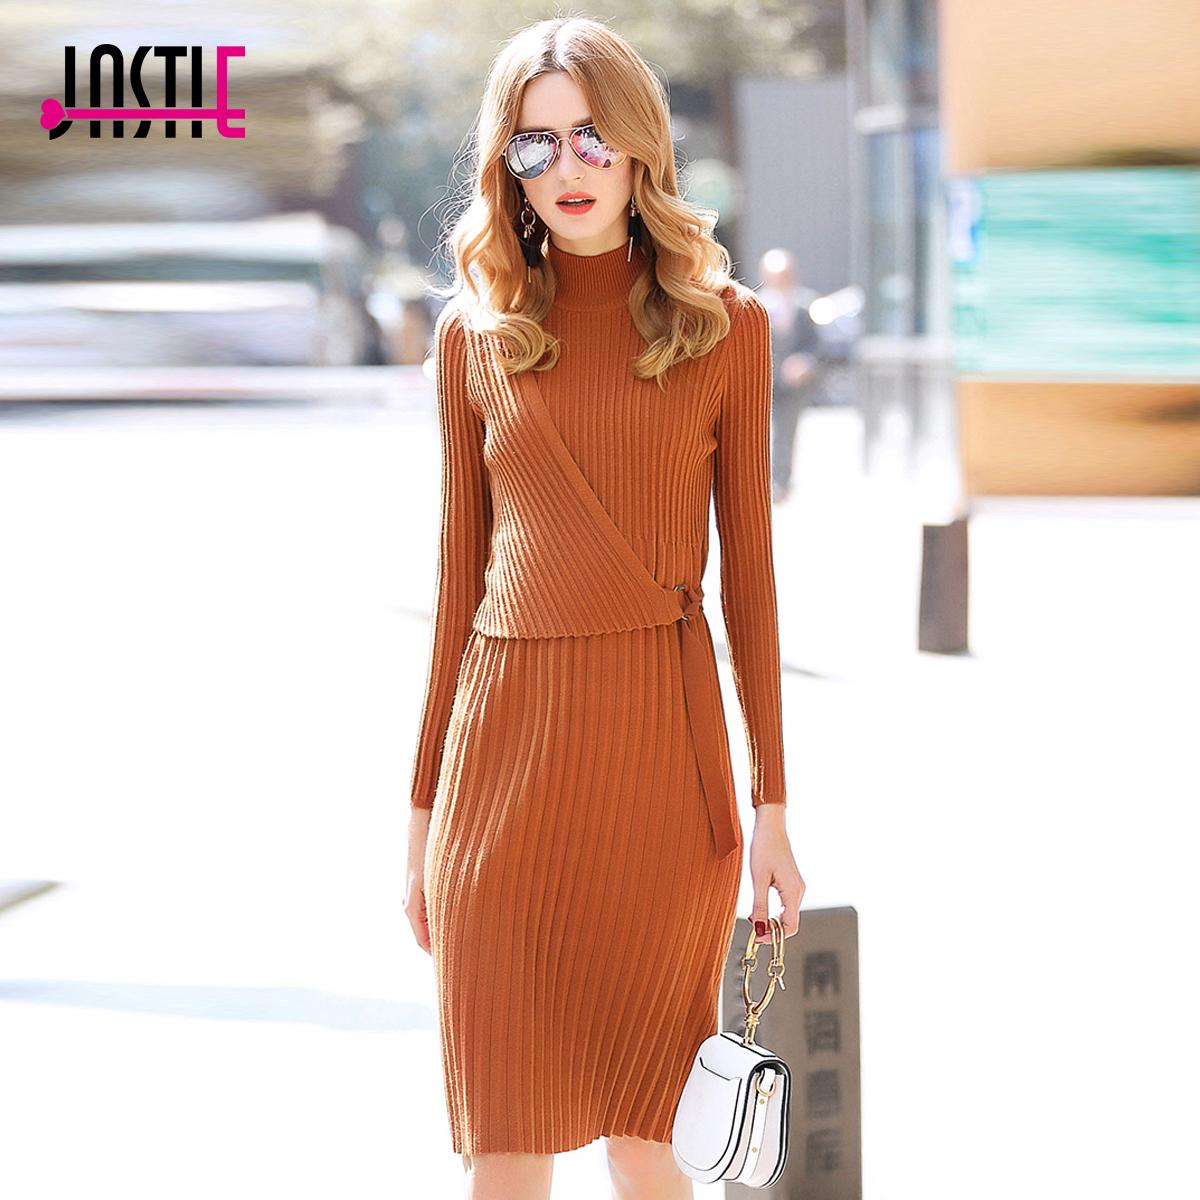 effa53831d54 2019 Jastie Turtleneck Long Sleeve Knit Women Dress Spring Autumn Midi  Dresses Slim Pleated Dress Elegant Bandage Boho Chic Vestidos From  Watch2013